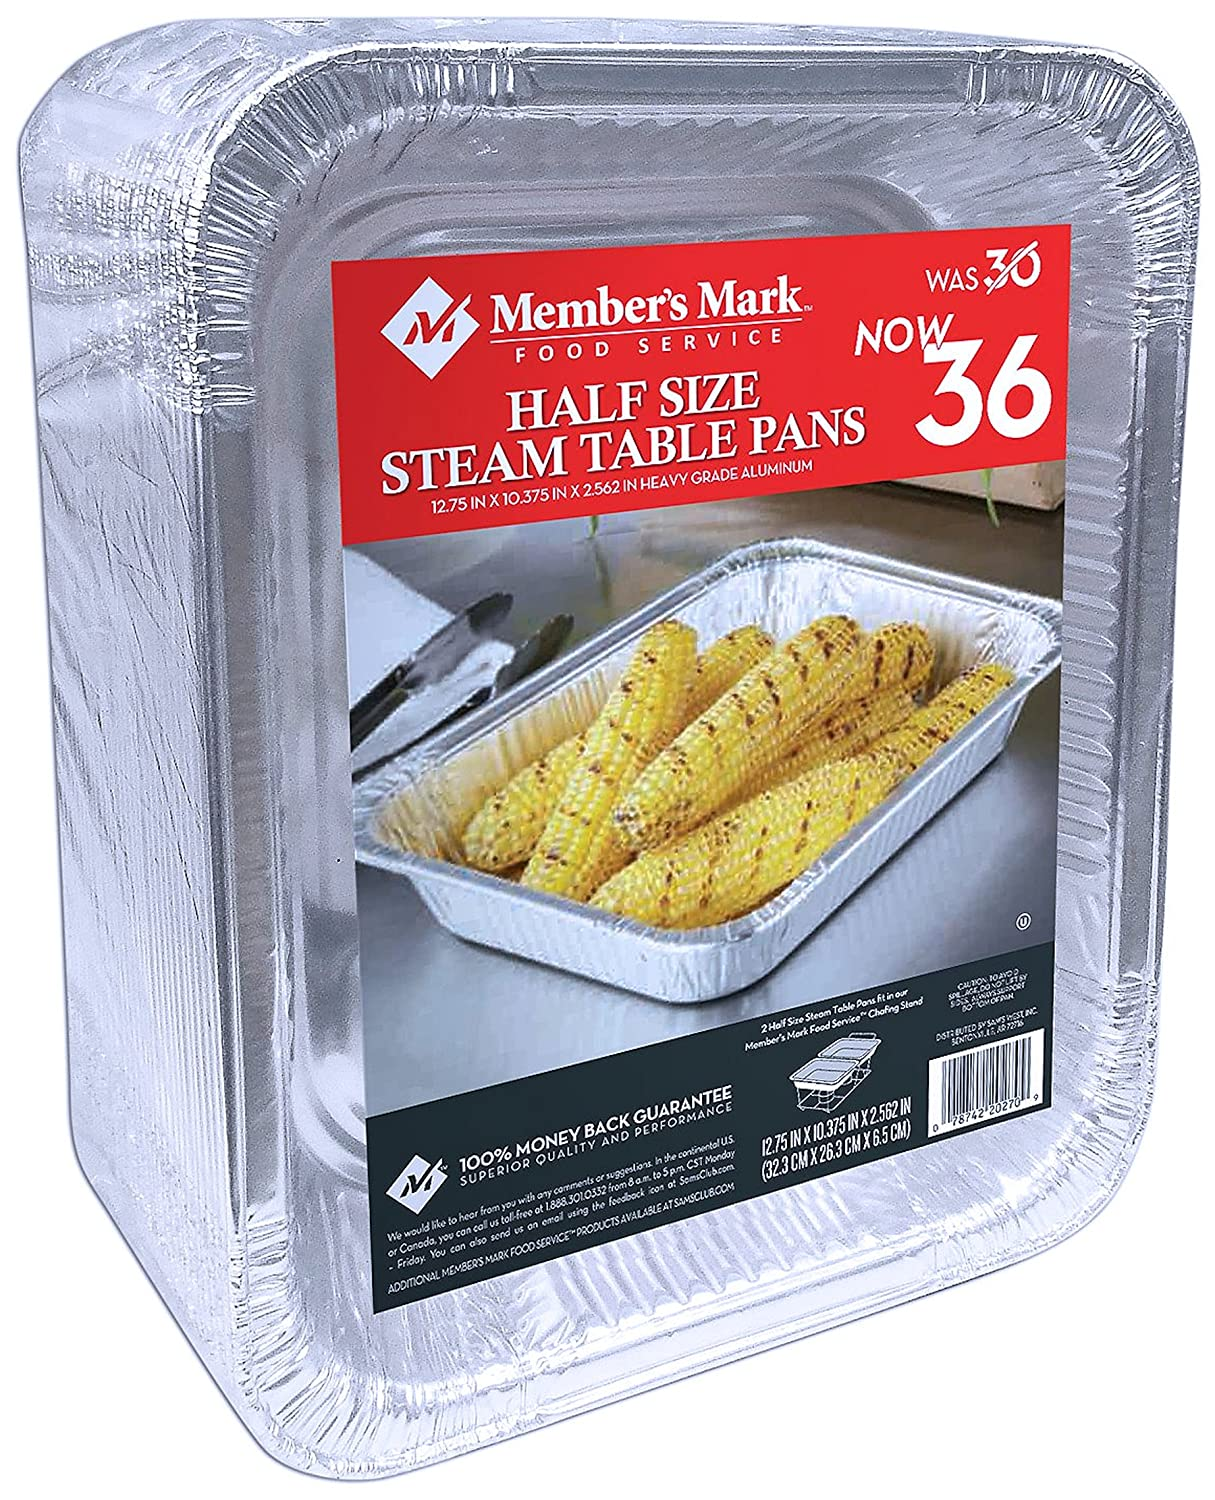 Daily Chef Aluminum Foil Steam Table Pans, Half Size (36ct.) DCS Deals 30-2